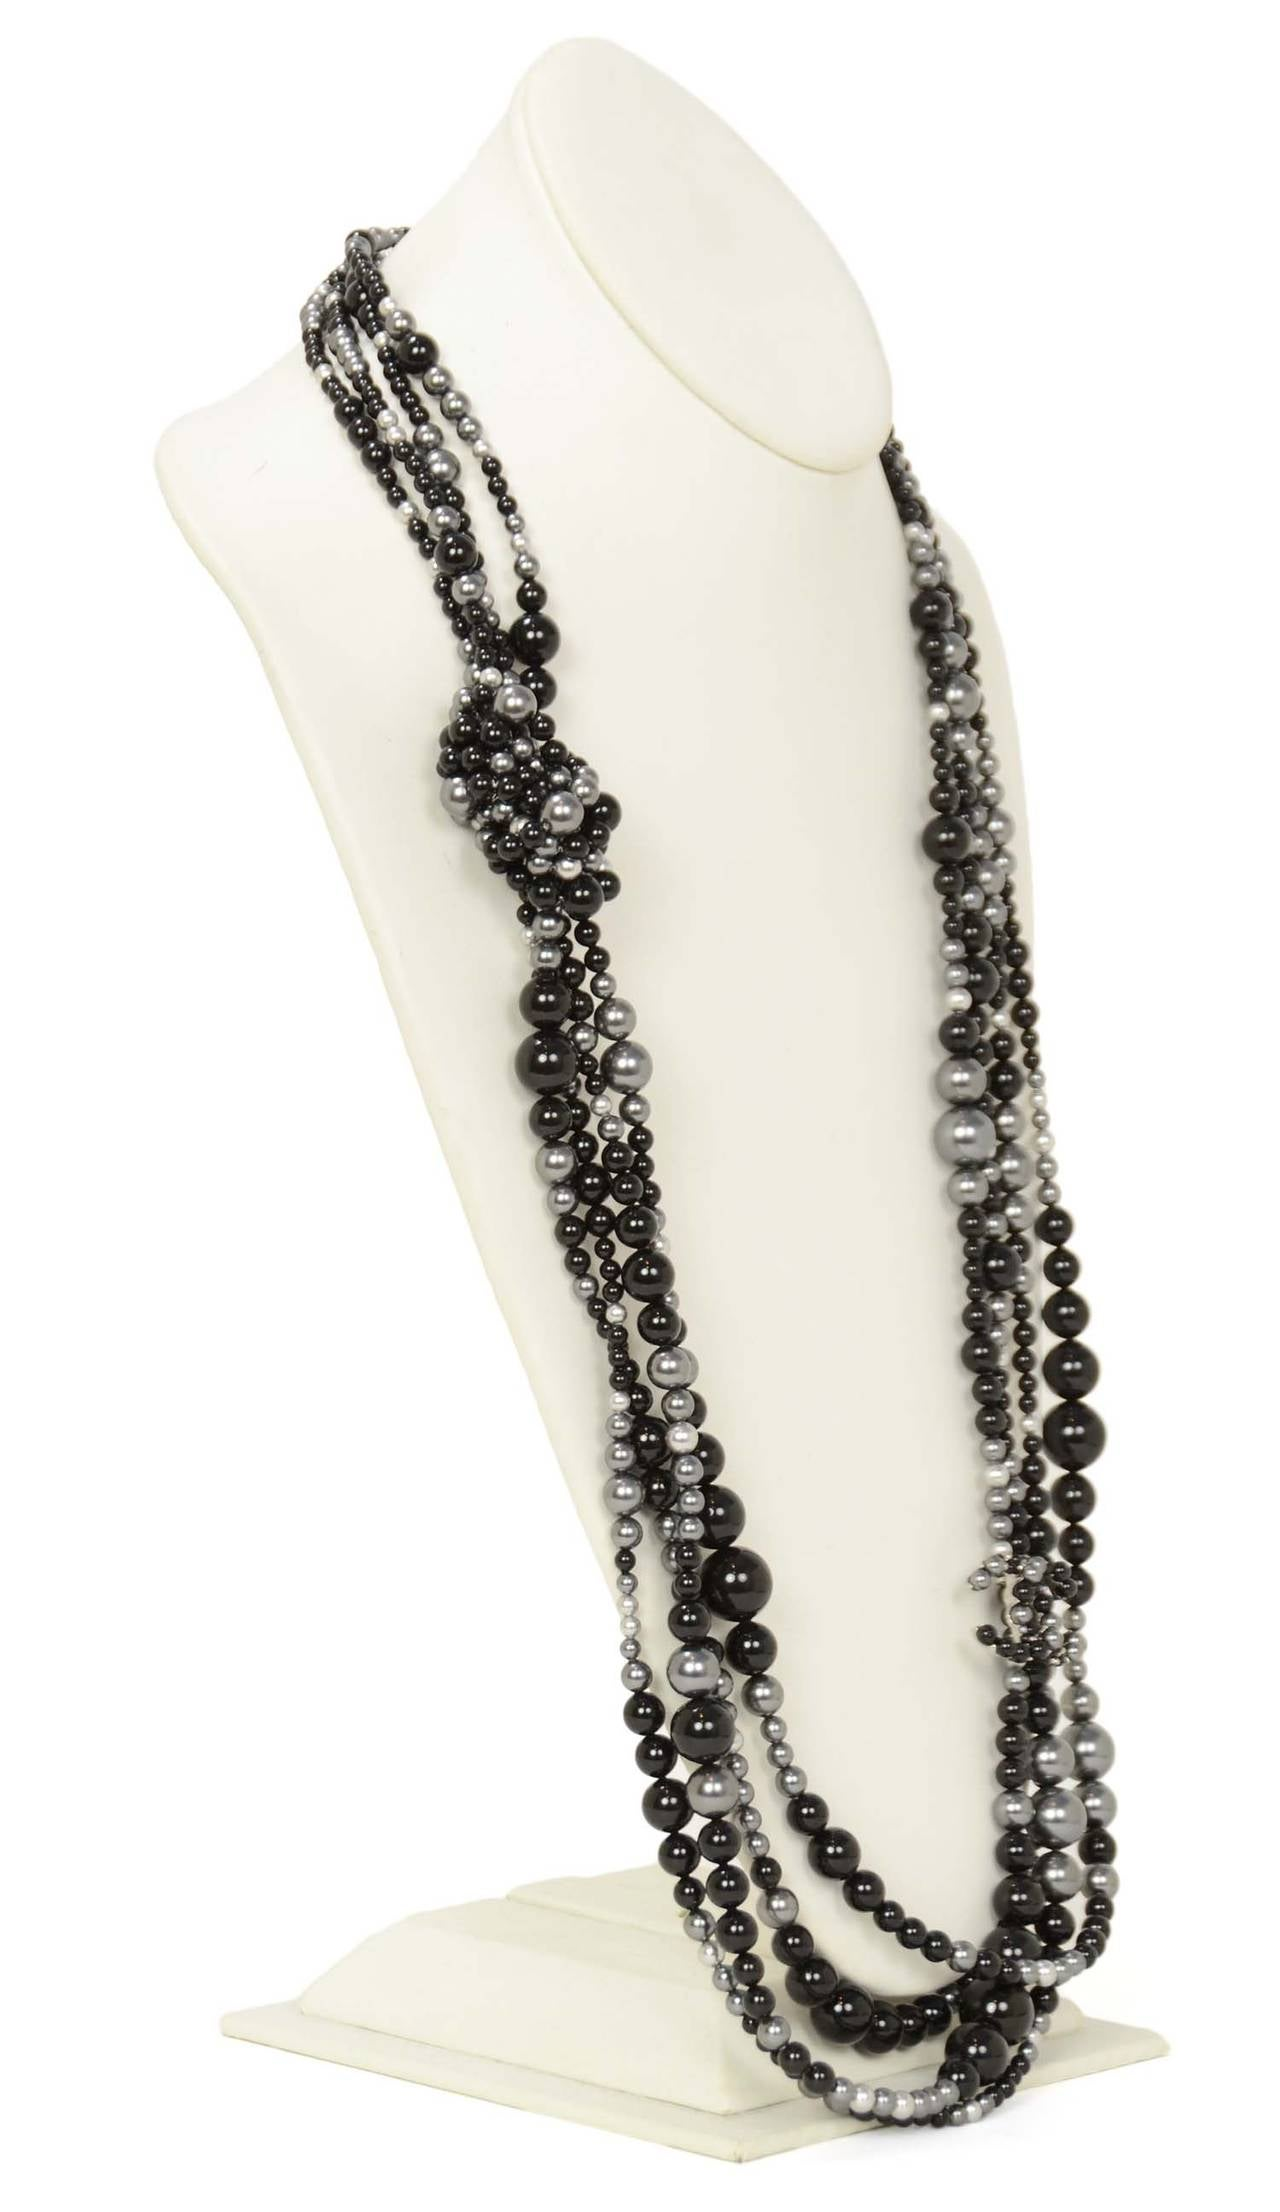 Features different sized faux pearls and beads with a grey and black DD and knotted detail. Can be worn doubled as a multi-strand choker.